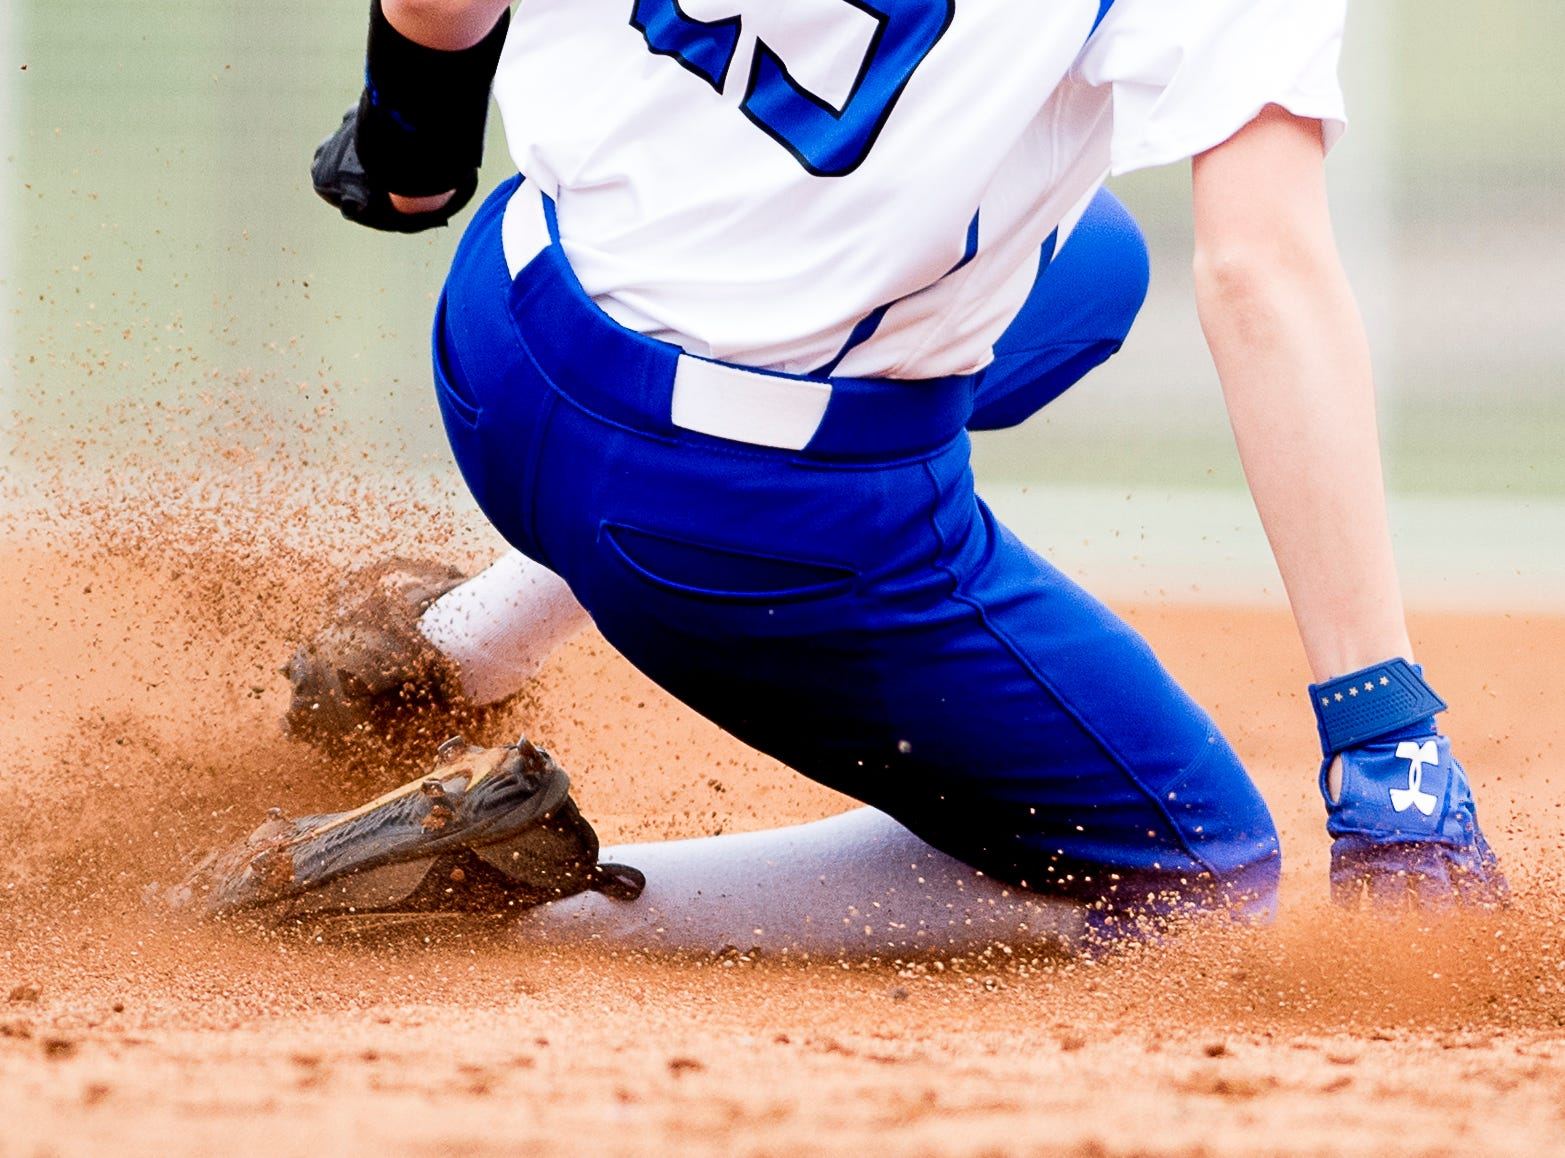 A Karns player slides into second base during a softball game between Catholic and Karns at Caswell Park in Knoxville, Tennessee on Friday, April 12, 2019.